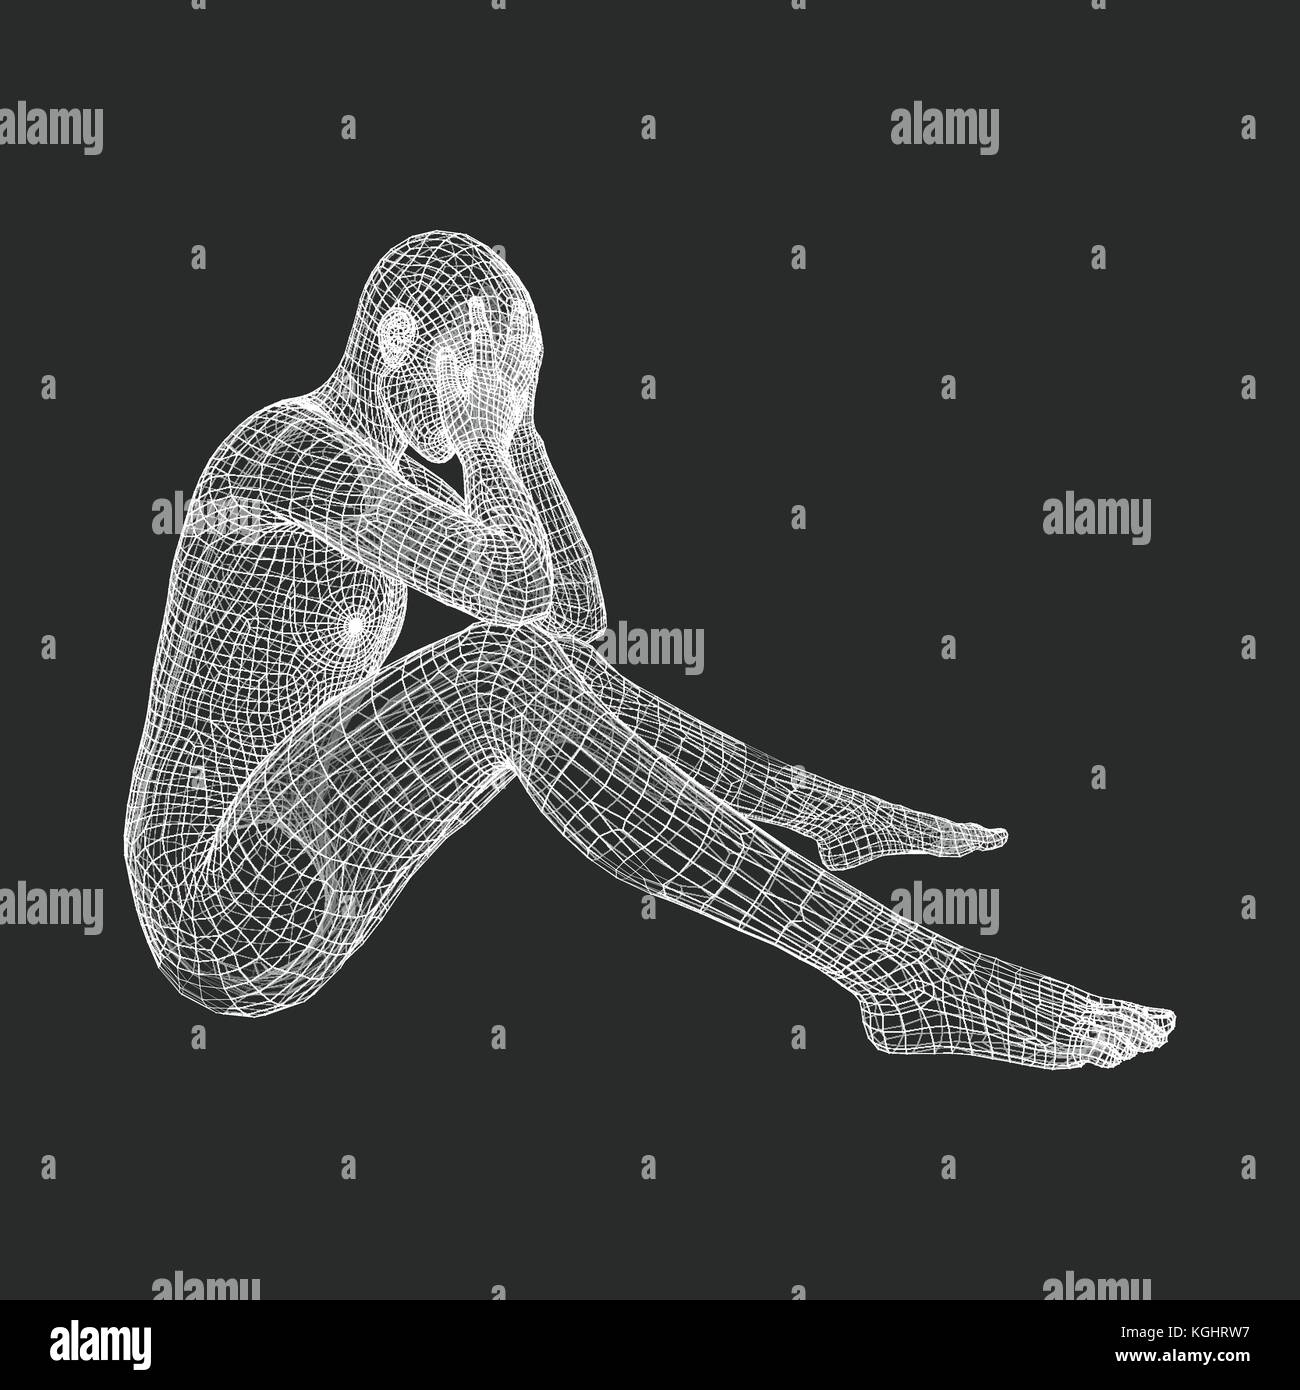 Miserable Depressed Man Sitting and Thinking. Man in a Thinker Pose. 3D Model of Man. Vector Illustration. - Stock Vector